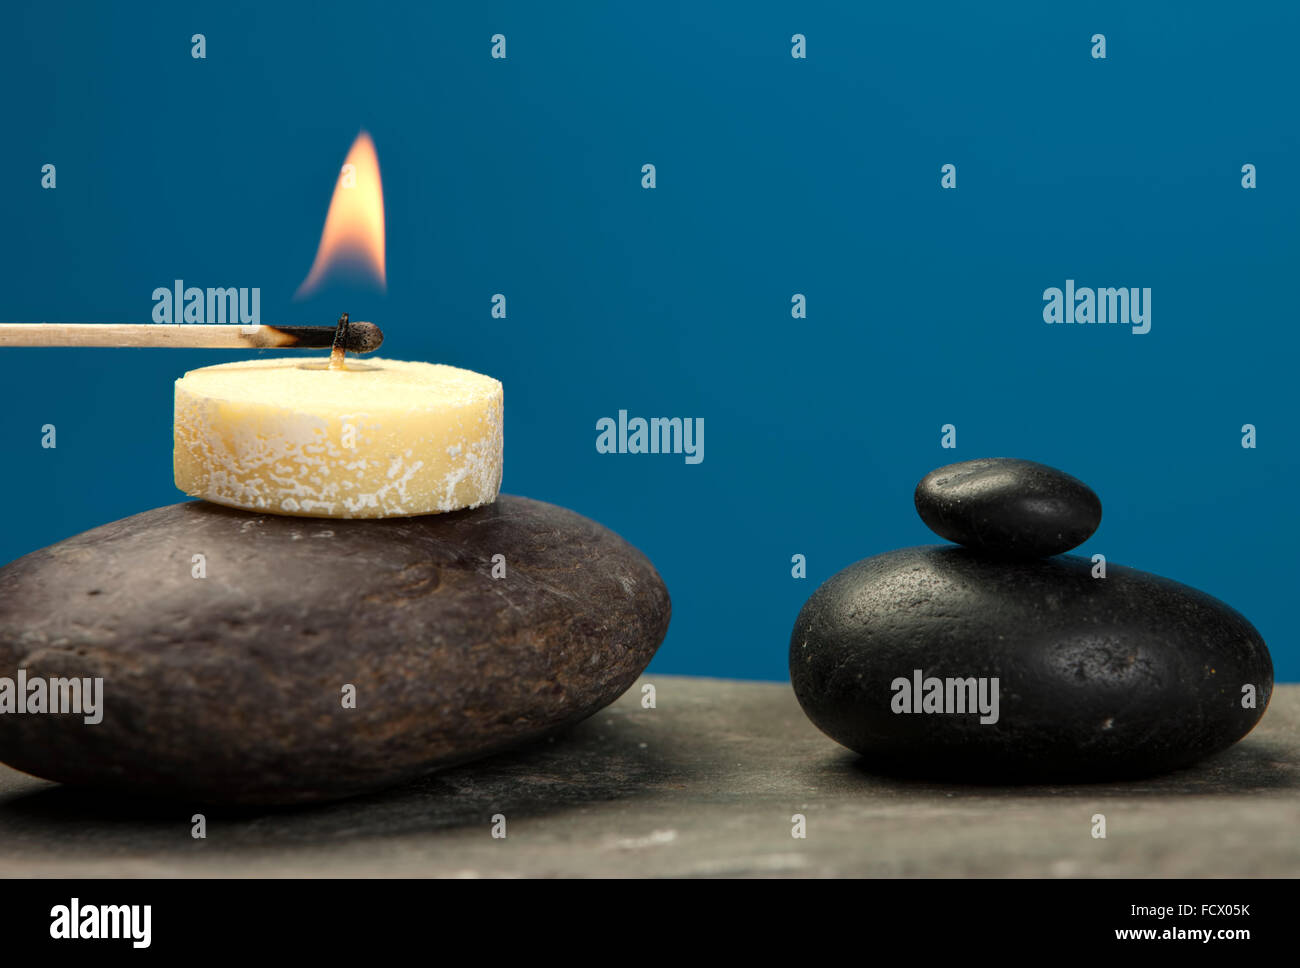 Lighting a tea candle. - Stock Image